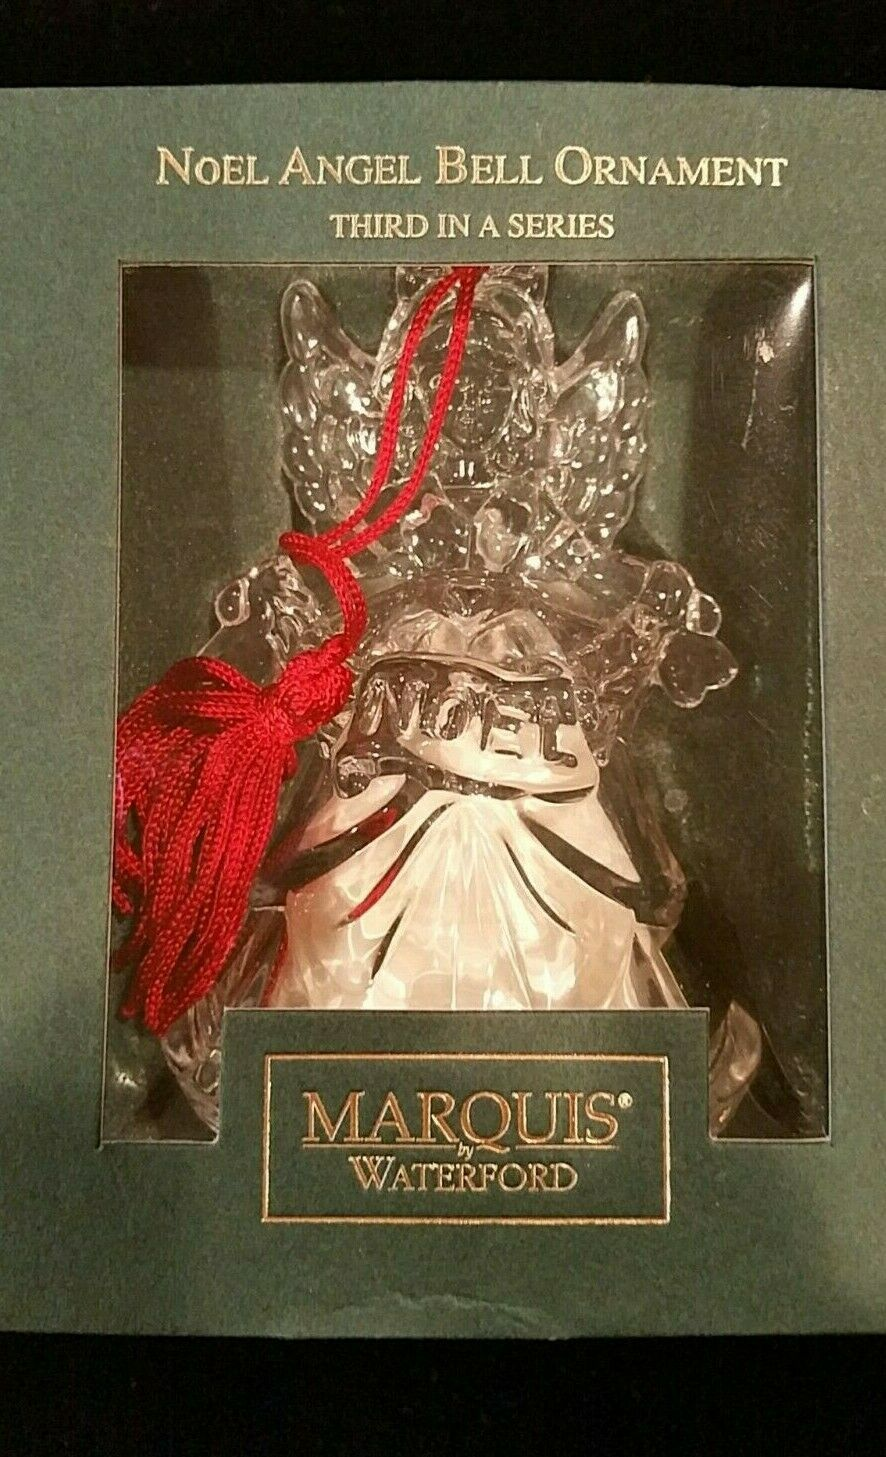 Waterford Crystal Marquis Noel Angel Bell Christmas Ornament Third in a Series image 10